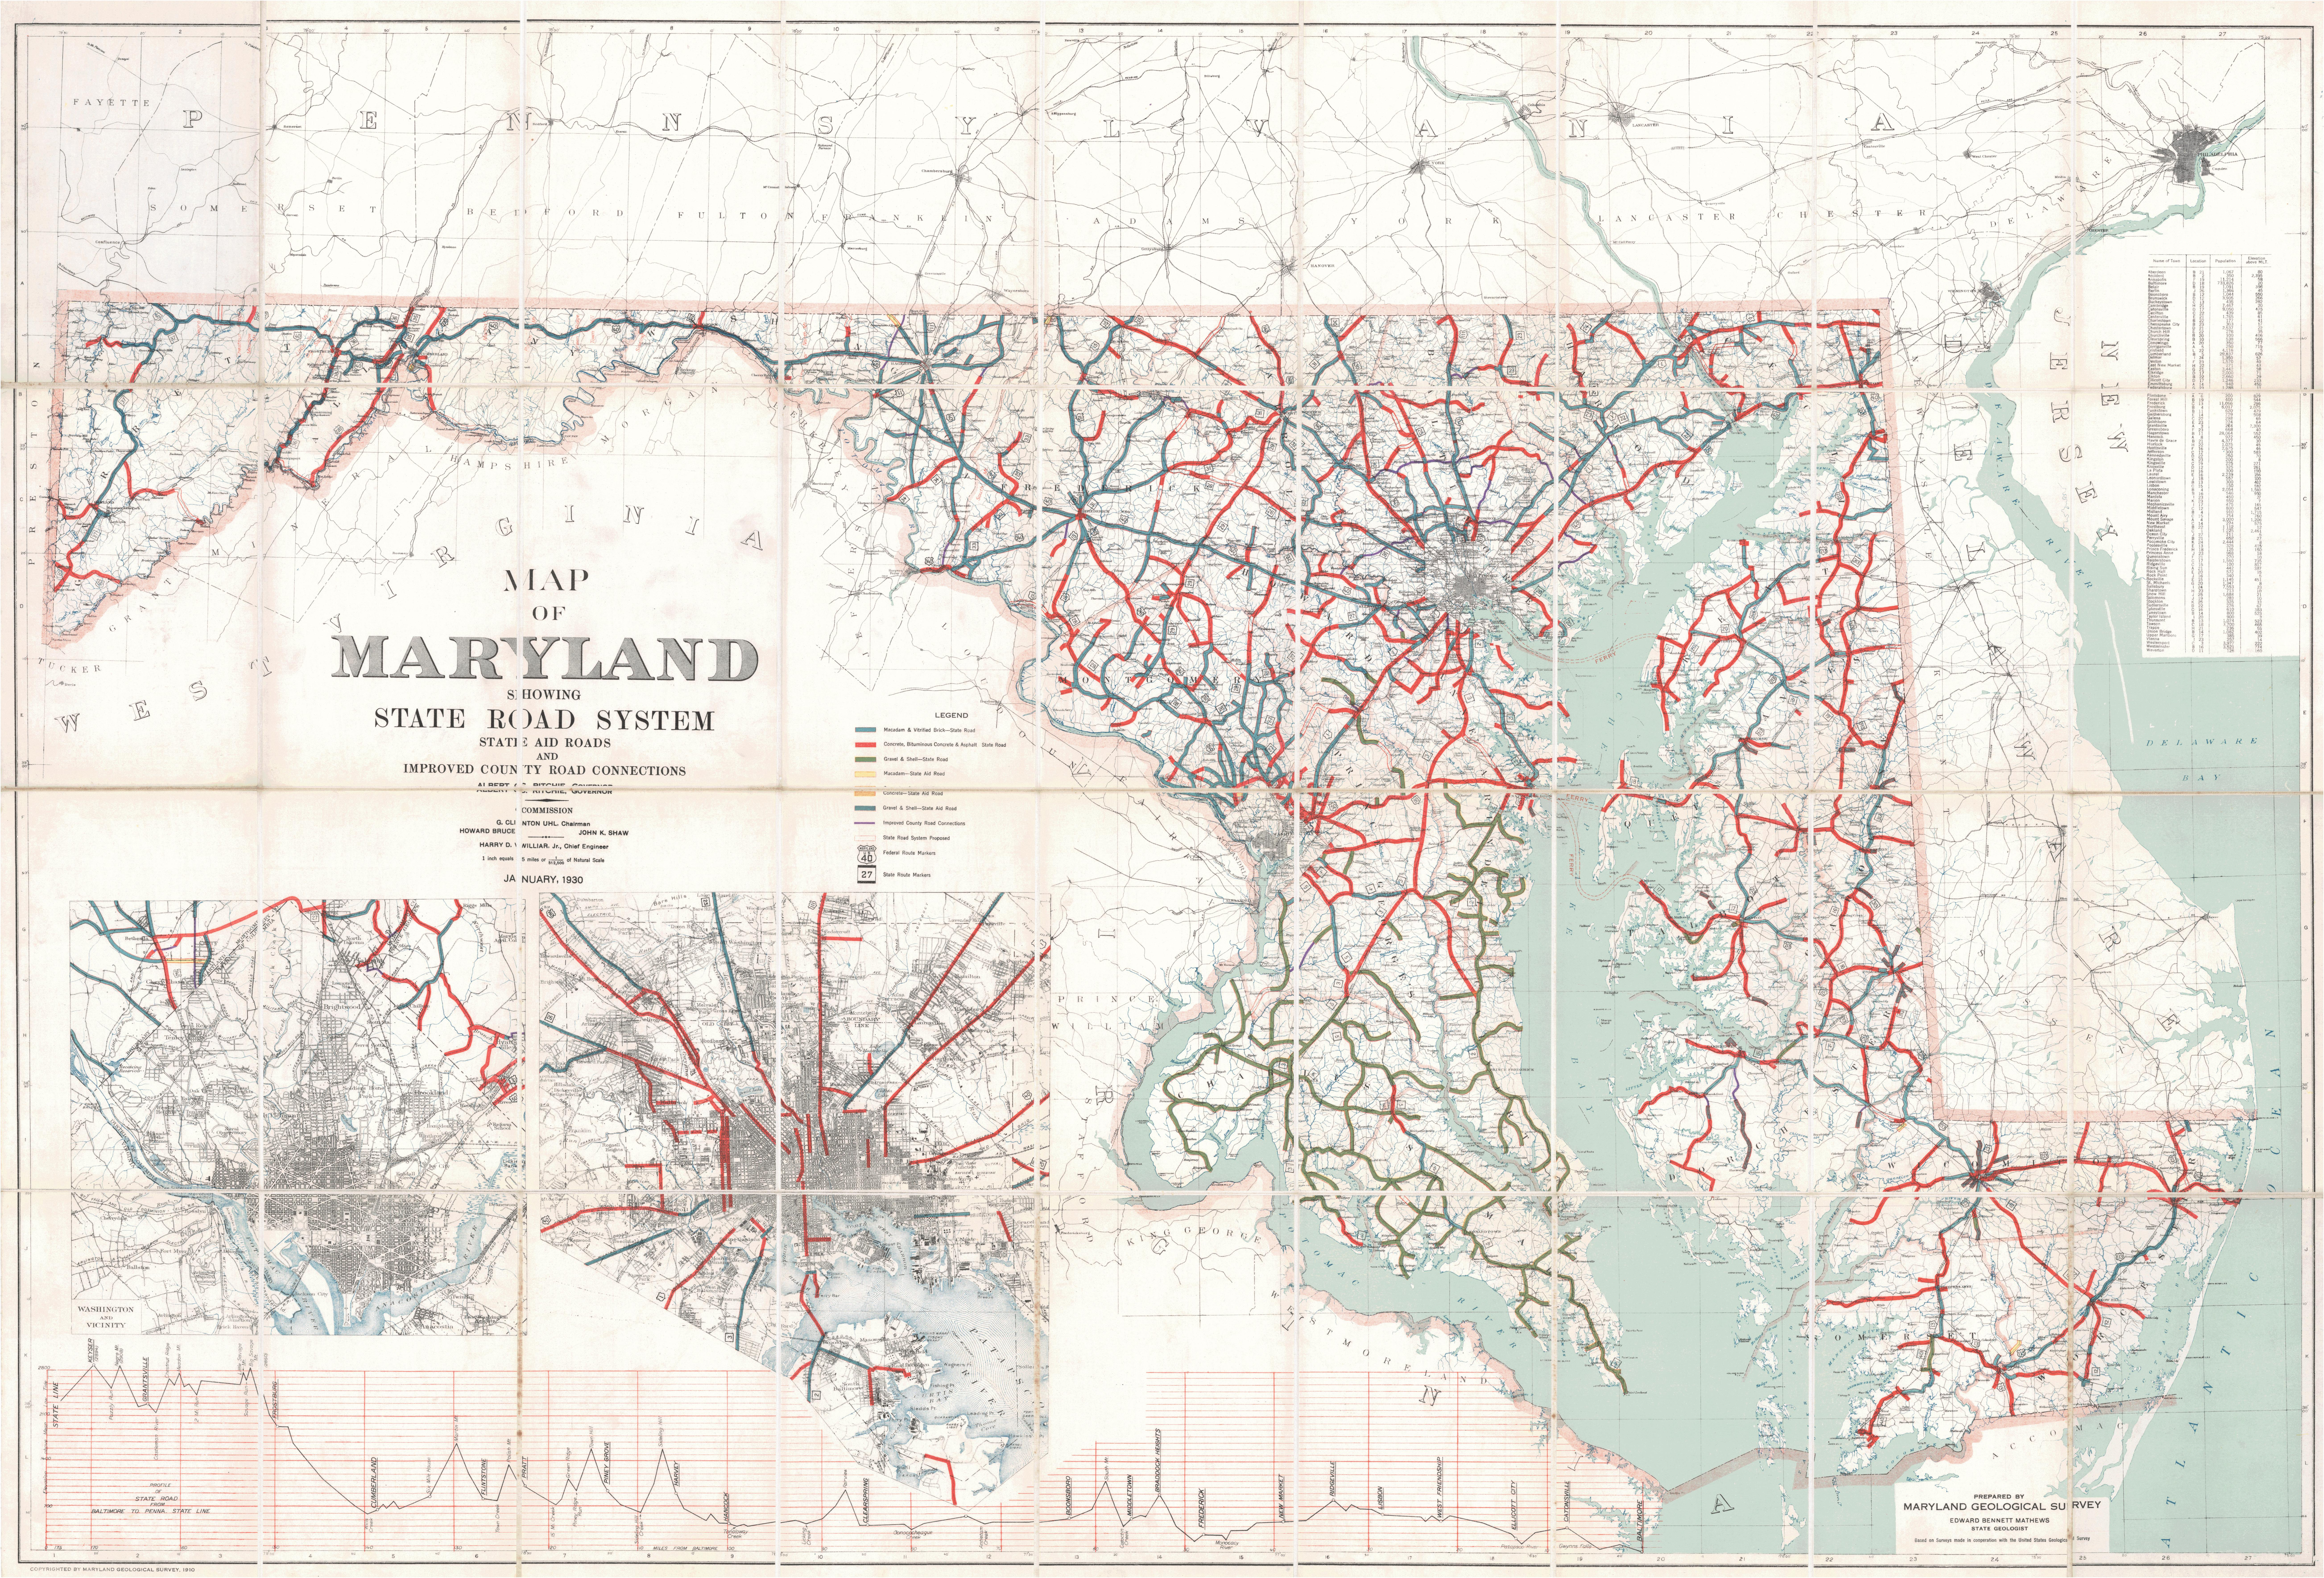 FileMaryland State Highway Map Jpg Wikimedia Commons - Maryland road map